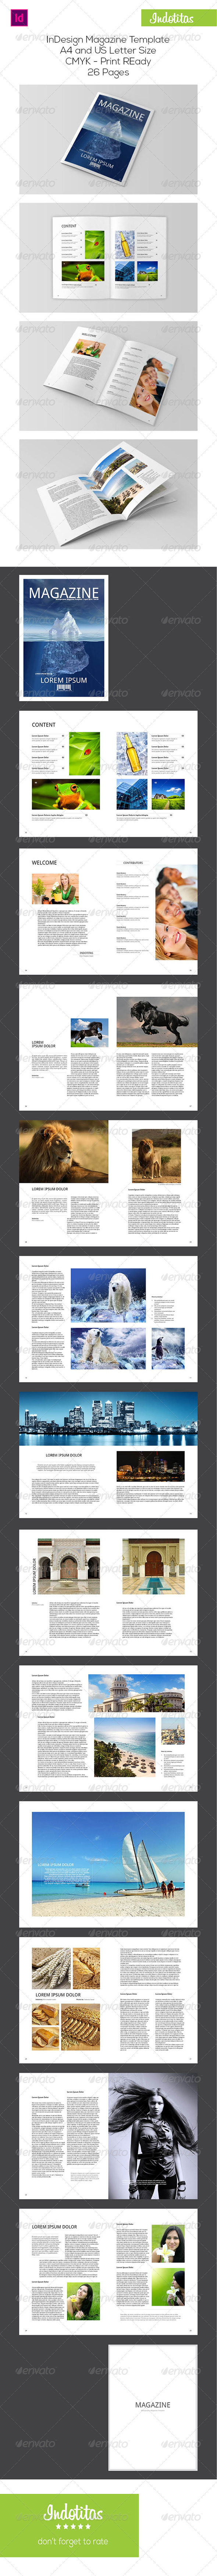 GraphicRiver InDesign Magazine Template 7620192